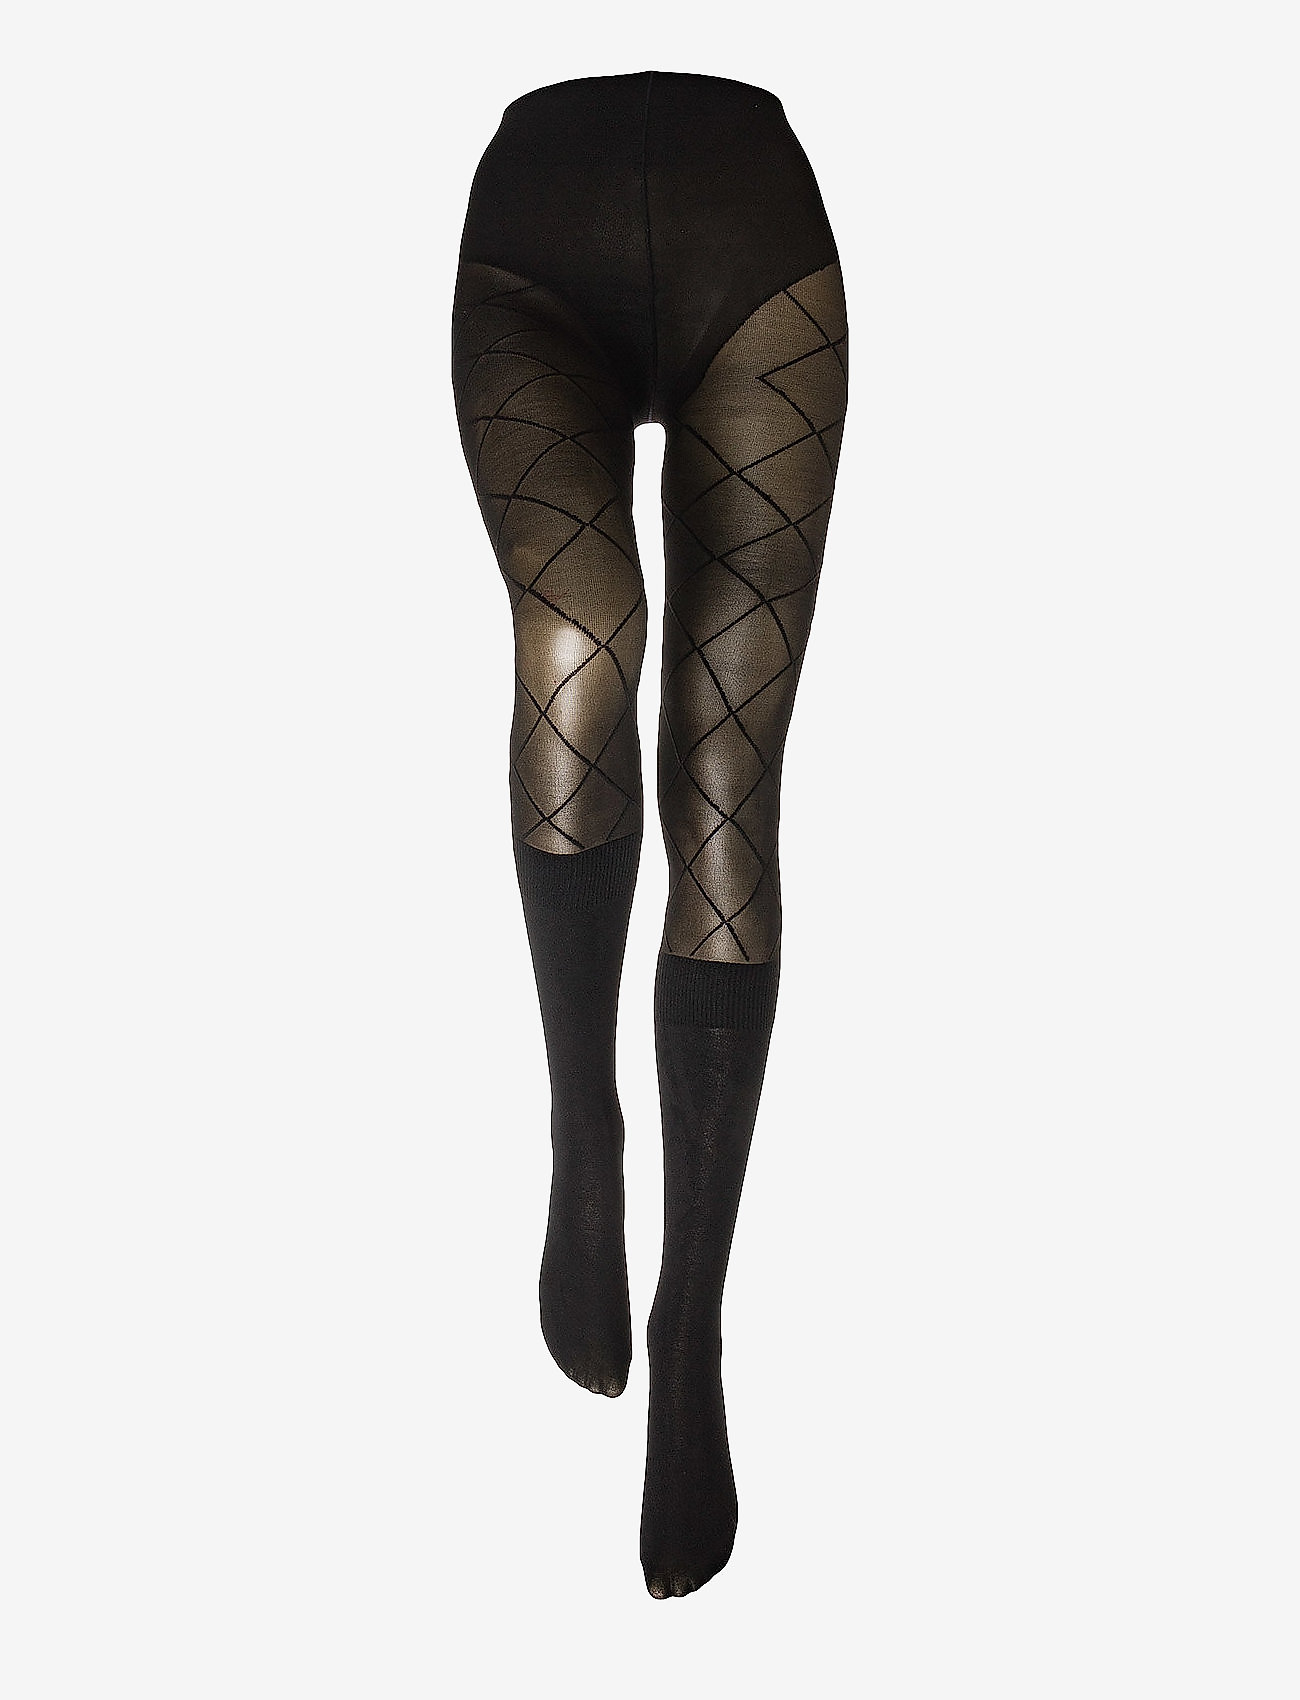 Pretty Polly - PP PATTERN MODAL SOCK TIGHTS - patroon - black - 1